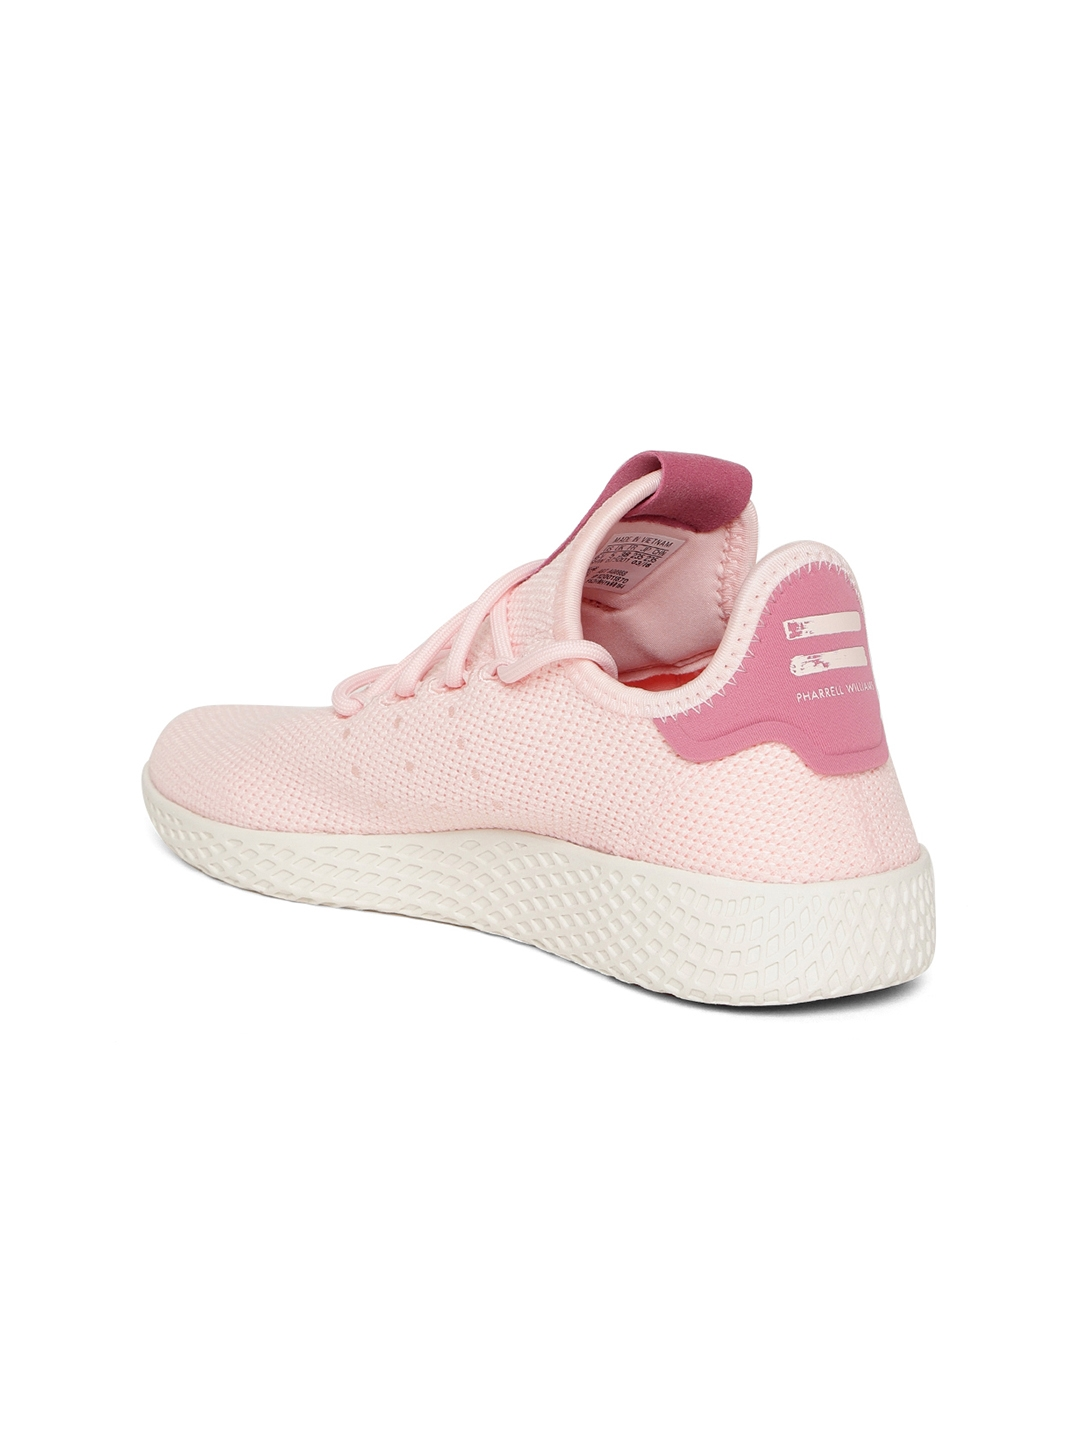 db194438af008 Buy ADIDAS Originals Women Pink Pharrell Williams Tennis HU Sneakers ...